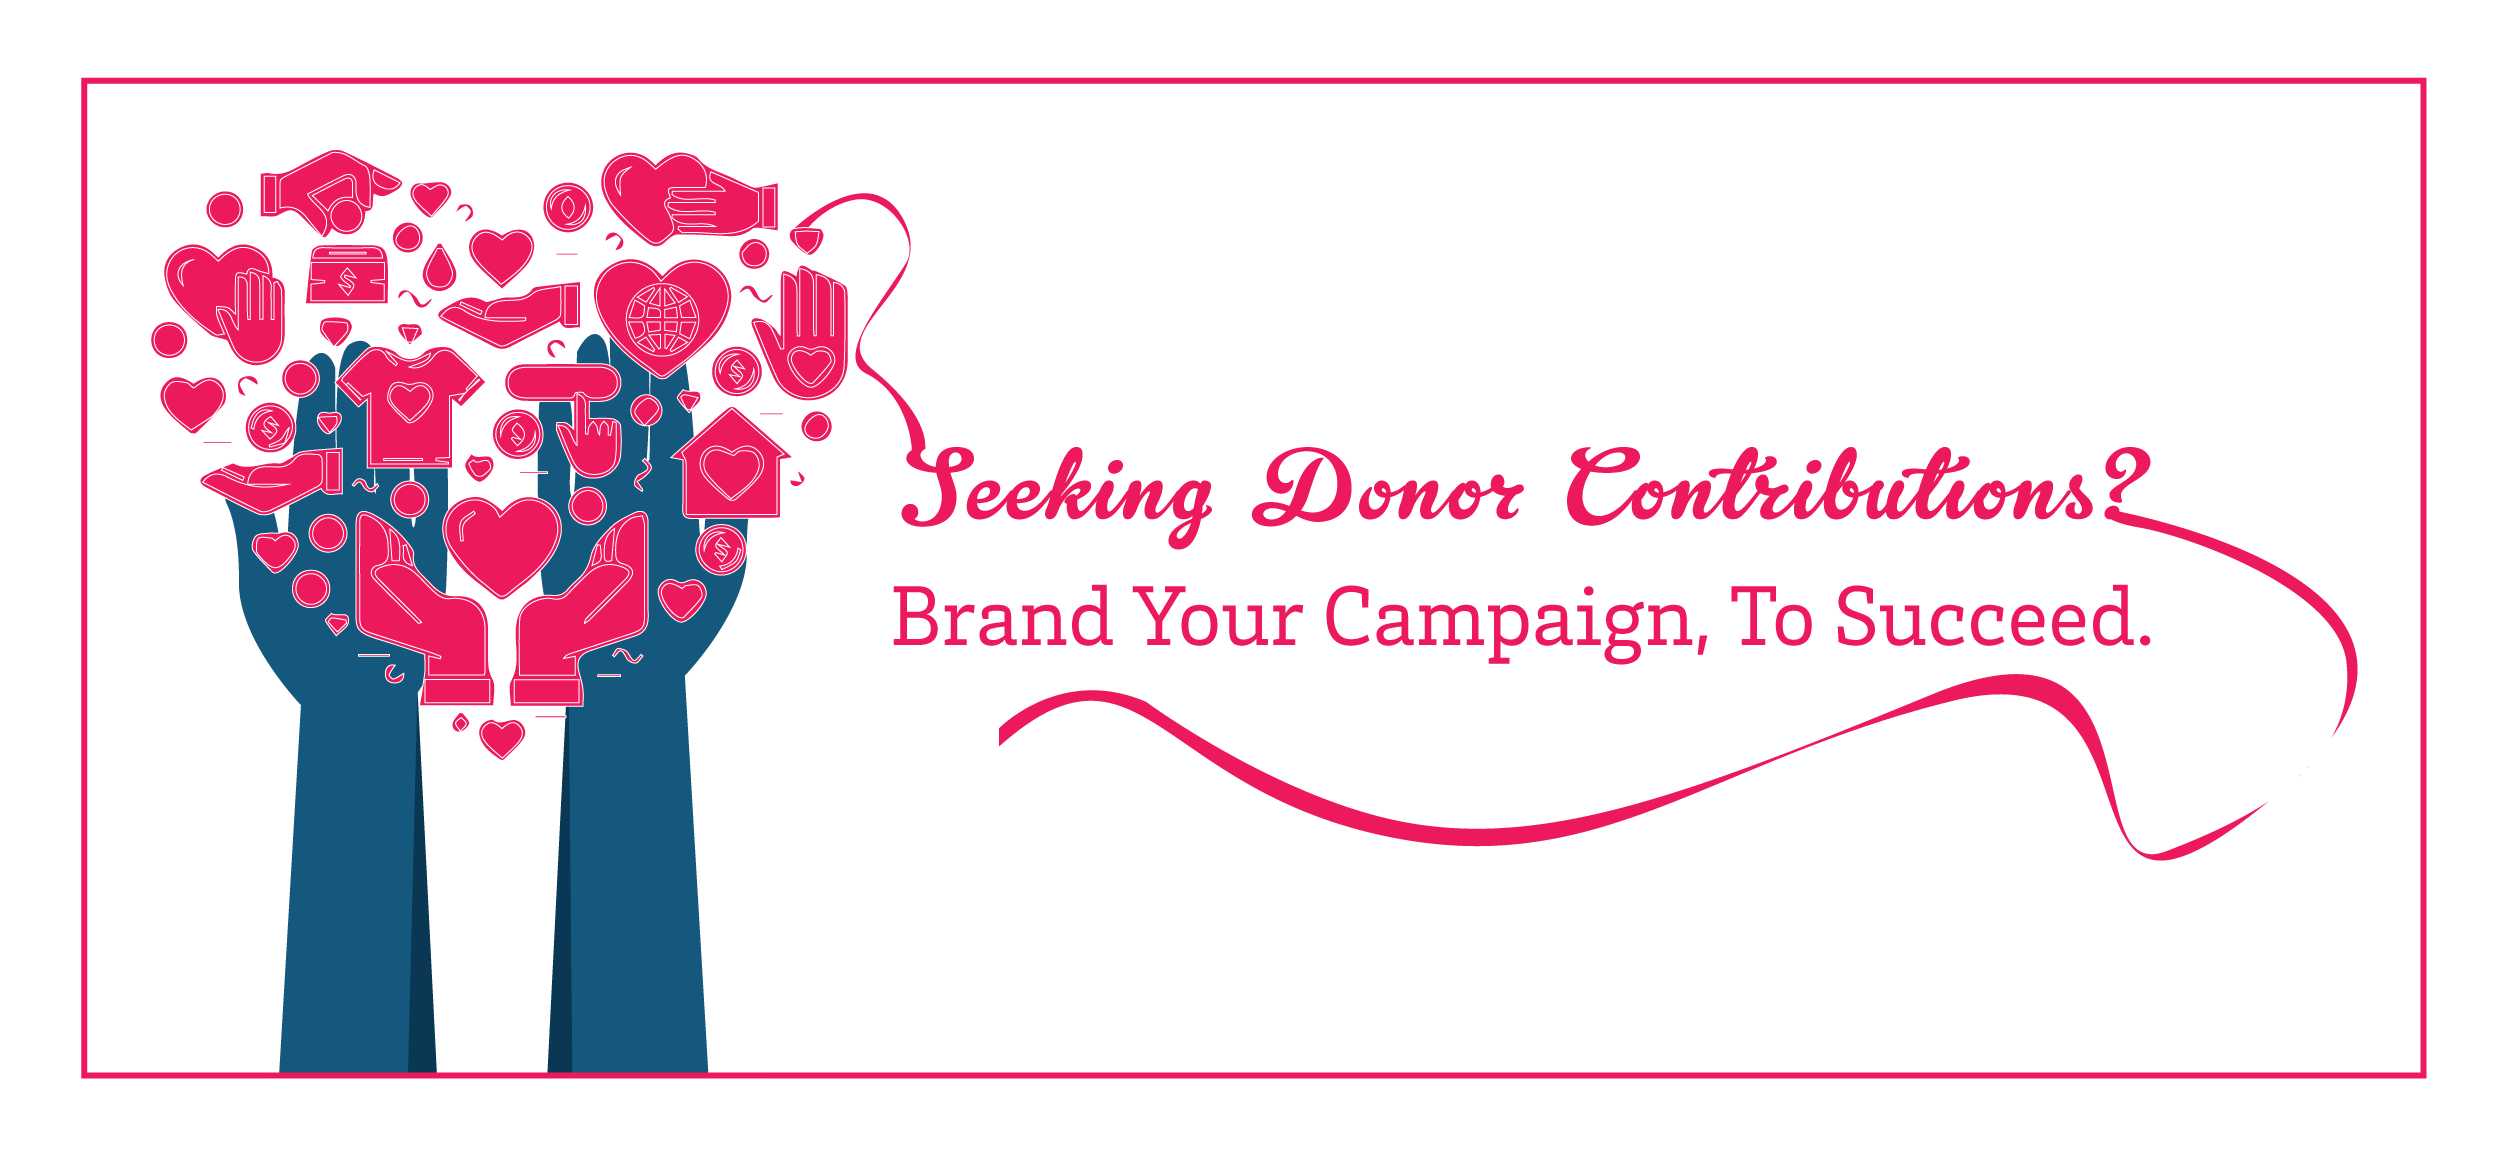 Seeking Donor Contributions? Brand Your Campaign, to Succeed.